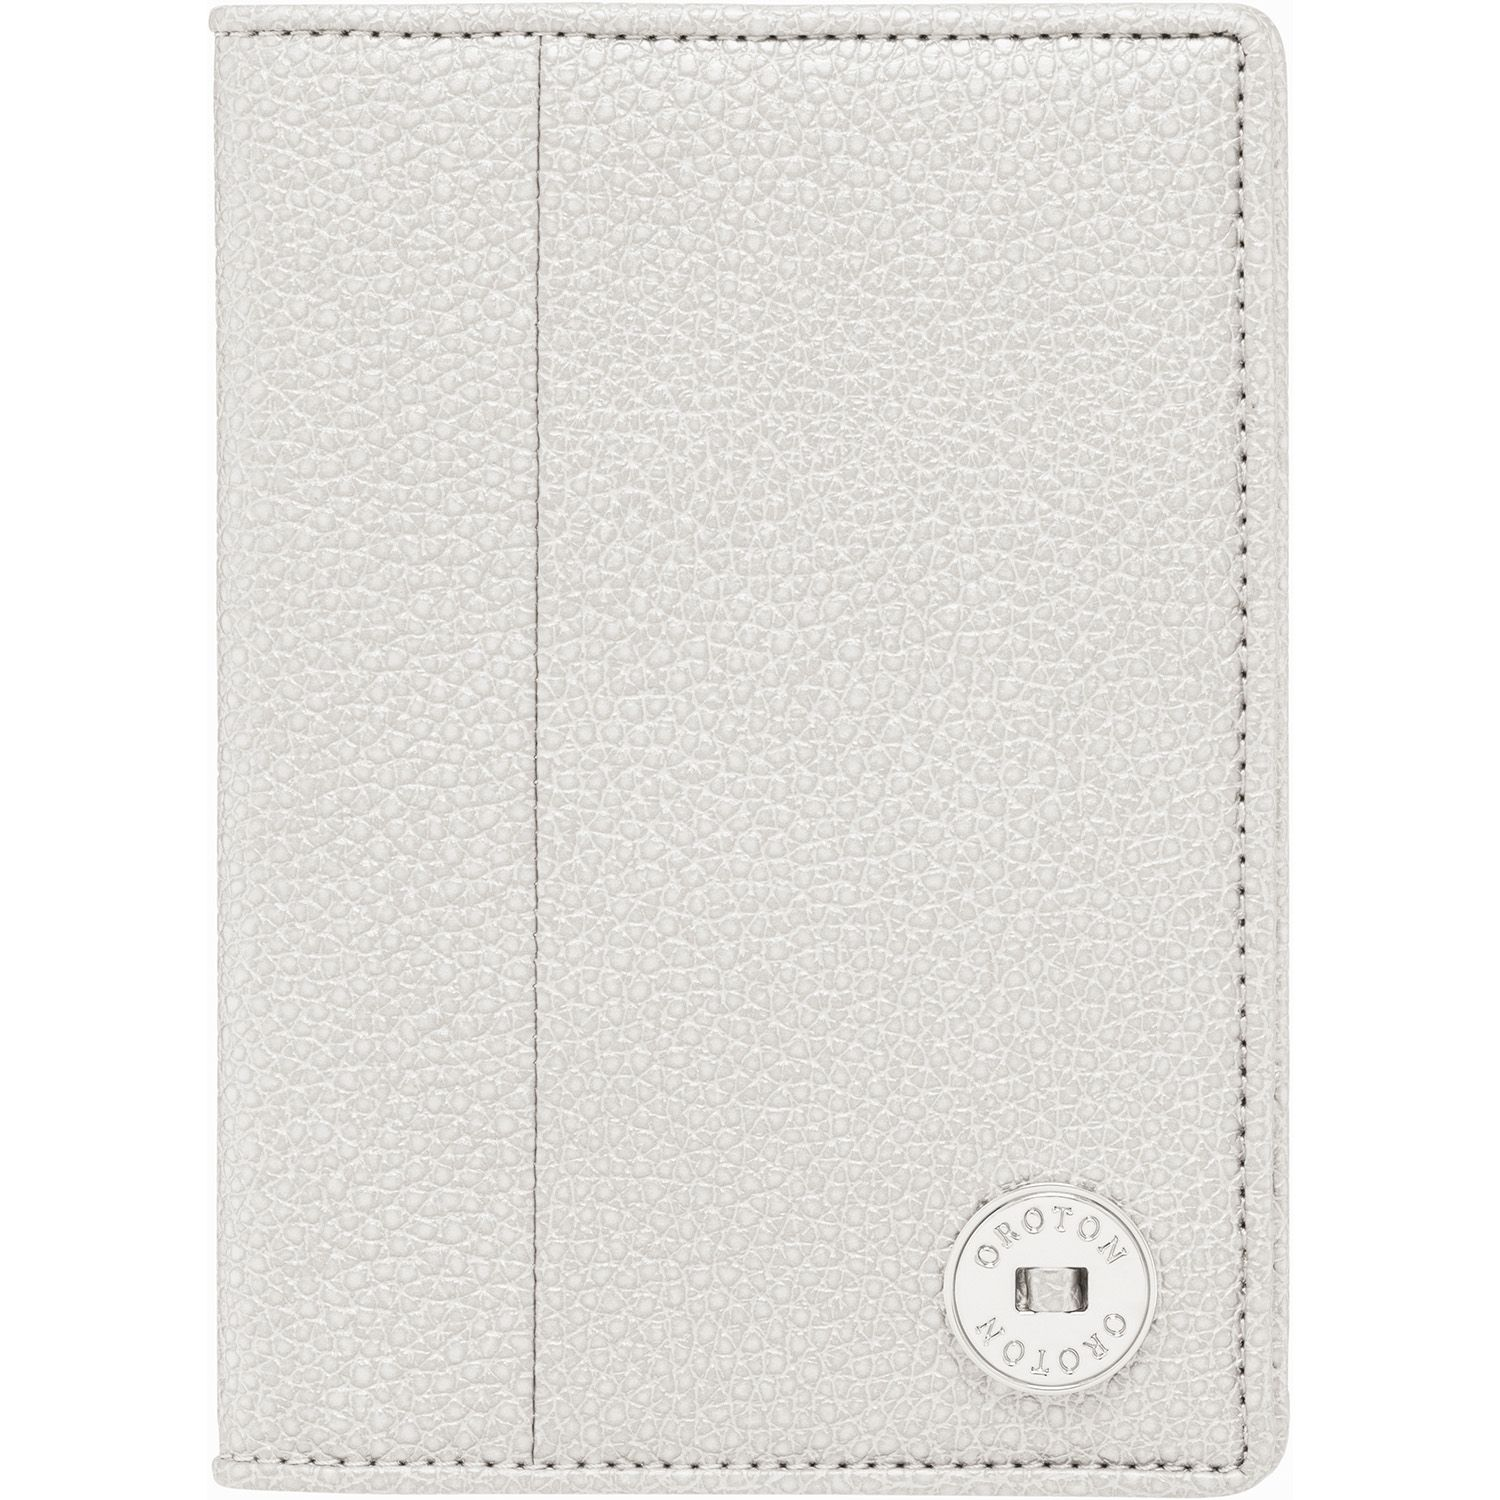 Melanie Pebble Passport Holder 43.50 | Oroton Official Site - Founded 1938